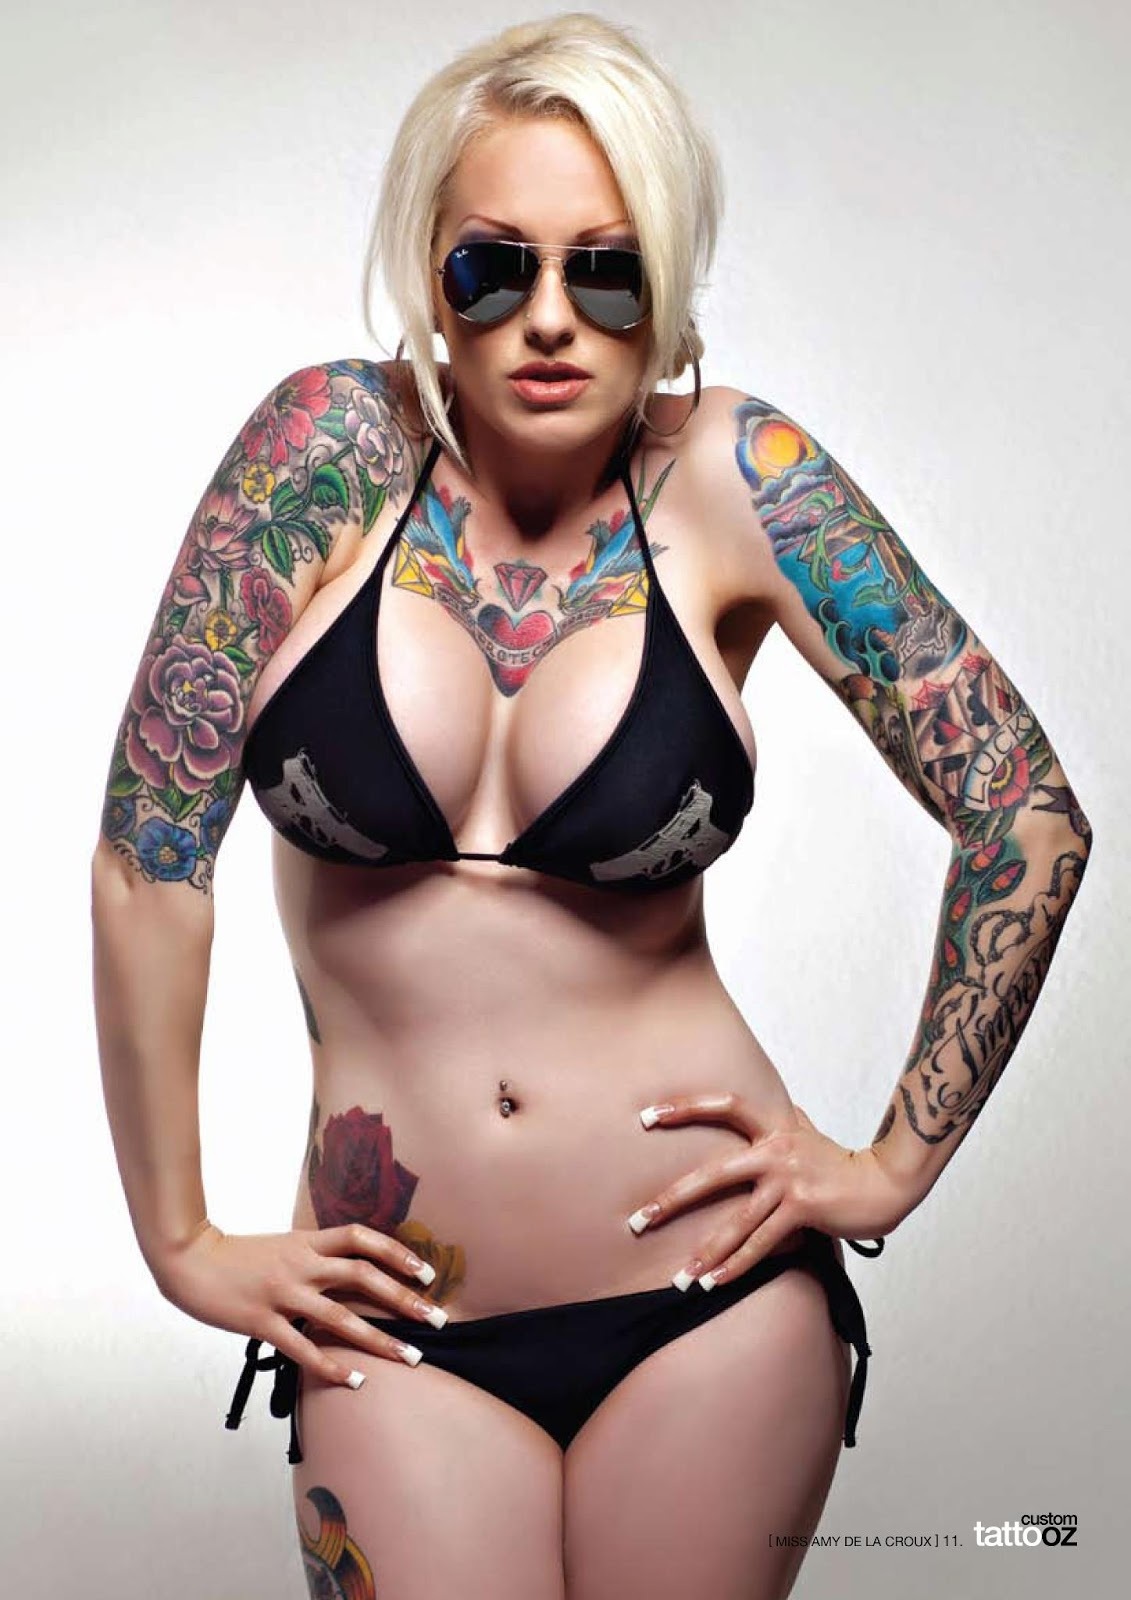 San Diego tattooed model Amy DeLaCroux